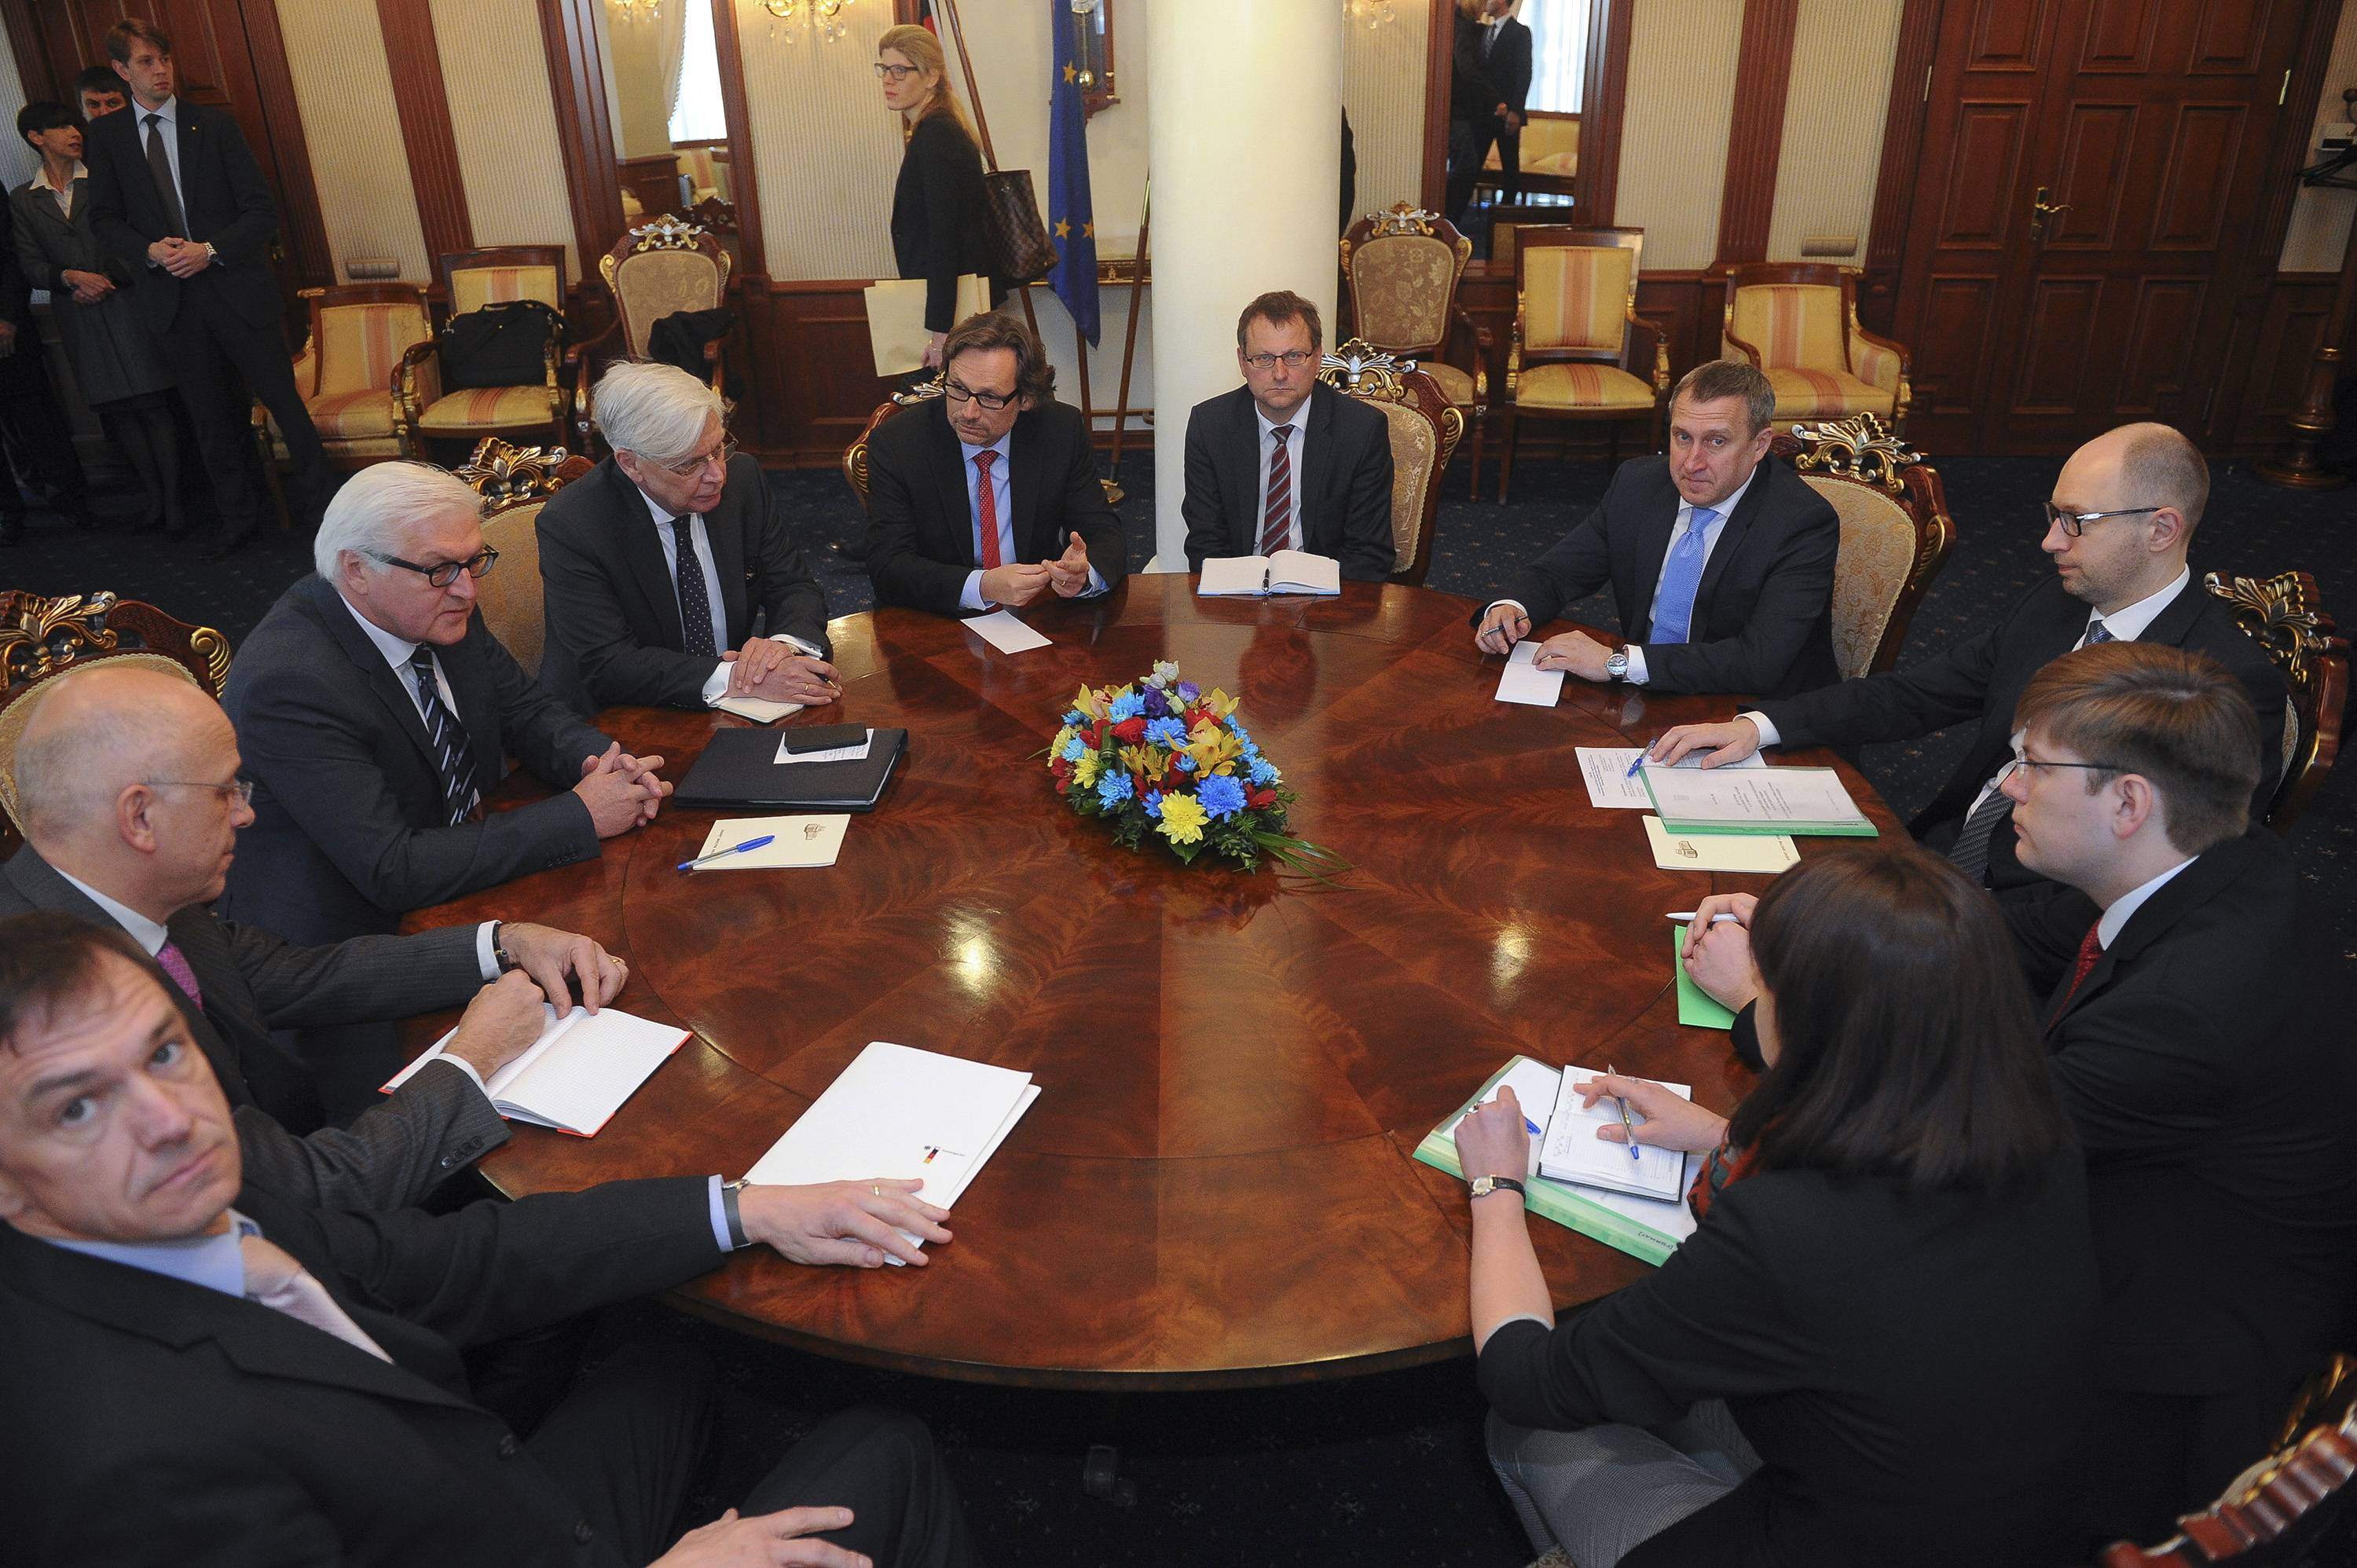 German Foreign Minister Frank-Walter Steinmeier, third from left, and Ukrainian Prime Minister Arseniy Yatsenyuk, right, attend a meeting in Kiev, Ukraine, Tuesday. Steinmeier flew to Ukraine Tuesday to help start talks between the Ukrainian government and its foes following the declaration of independence by two eastern region.